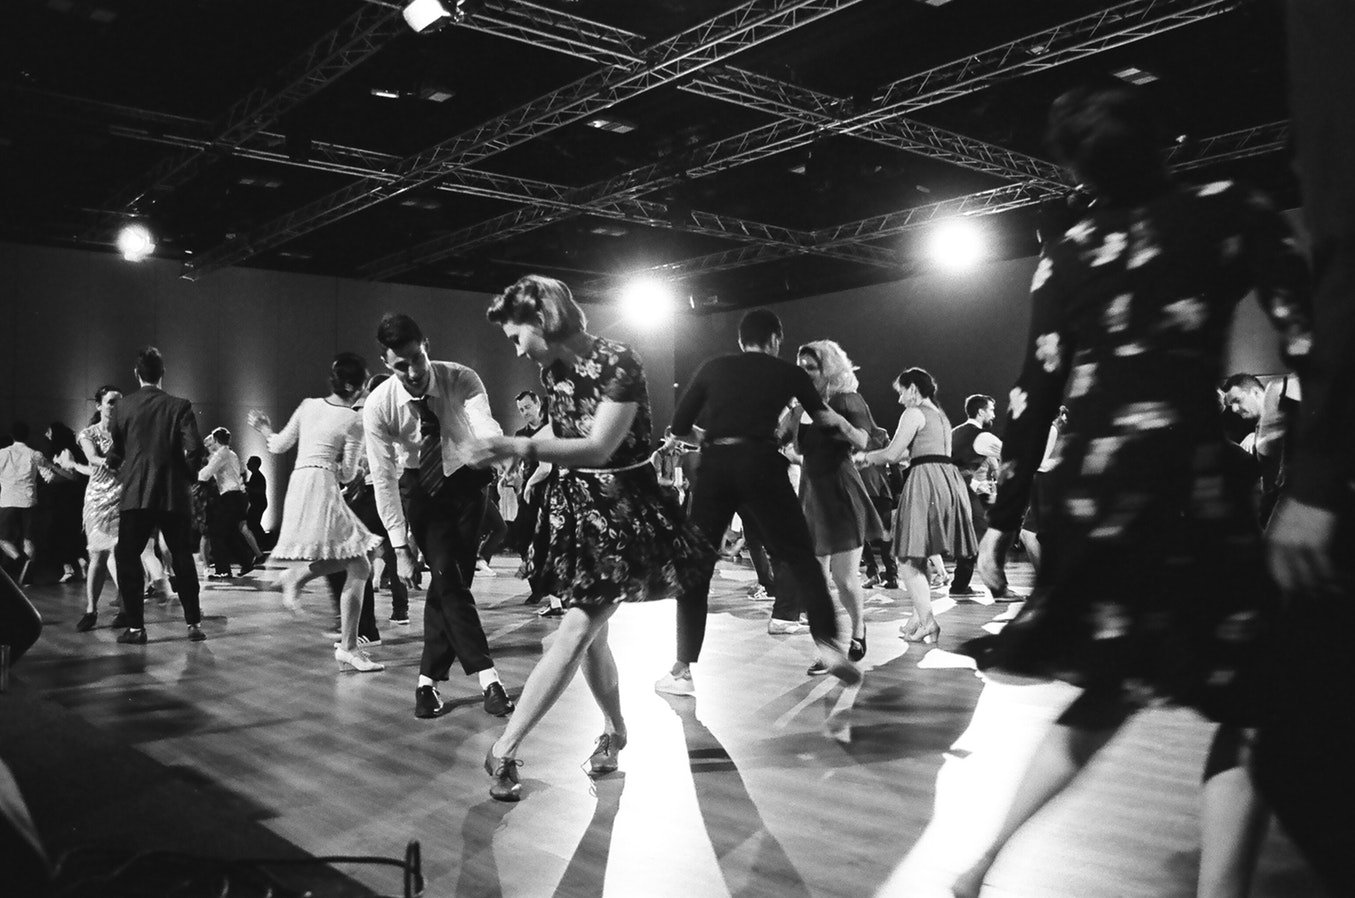 Couples dancing on the dance floor. Dancing is a great way to stay healthy while aging.